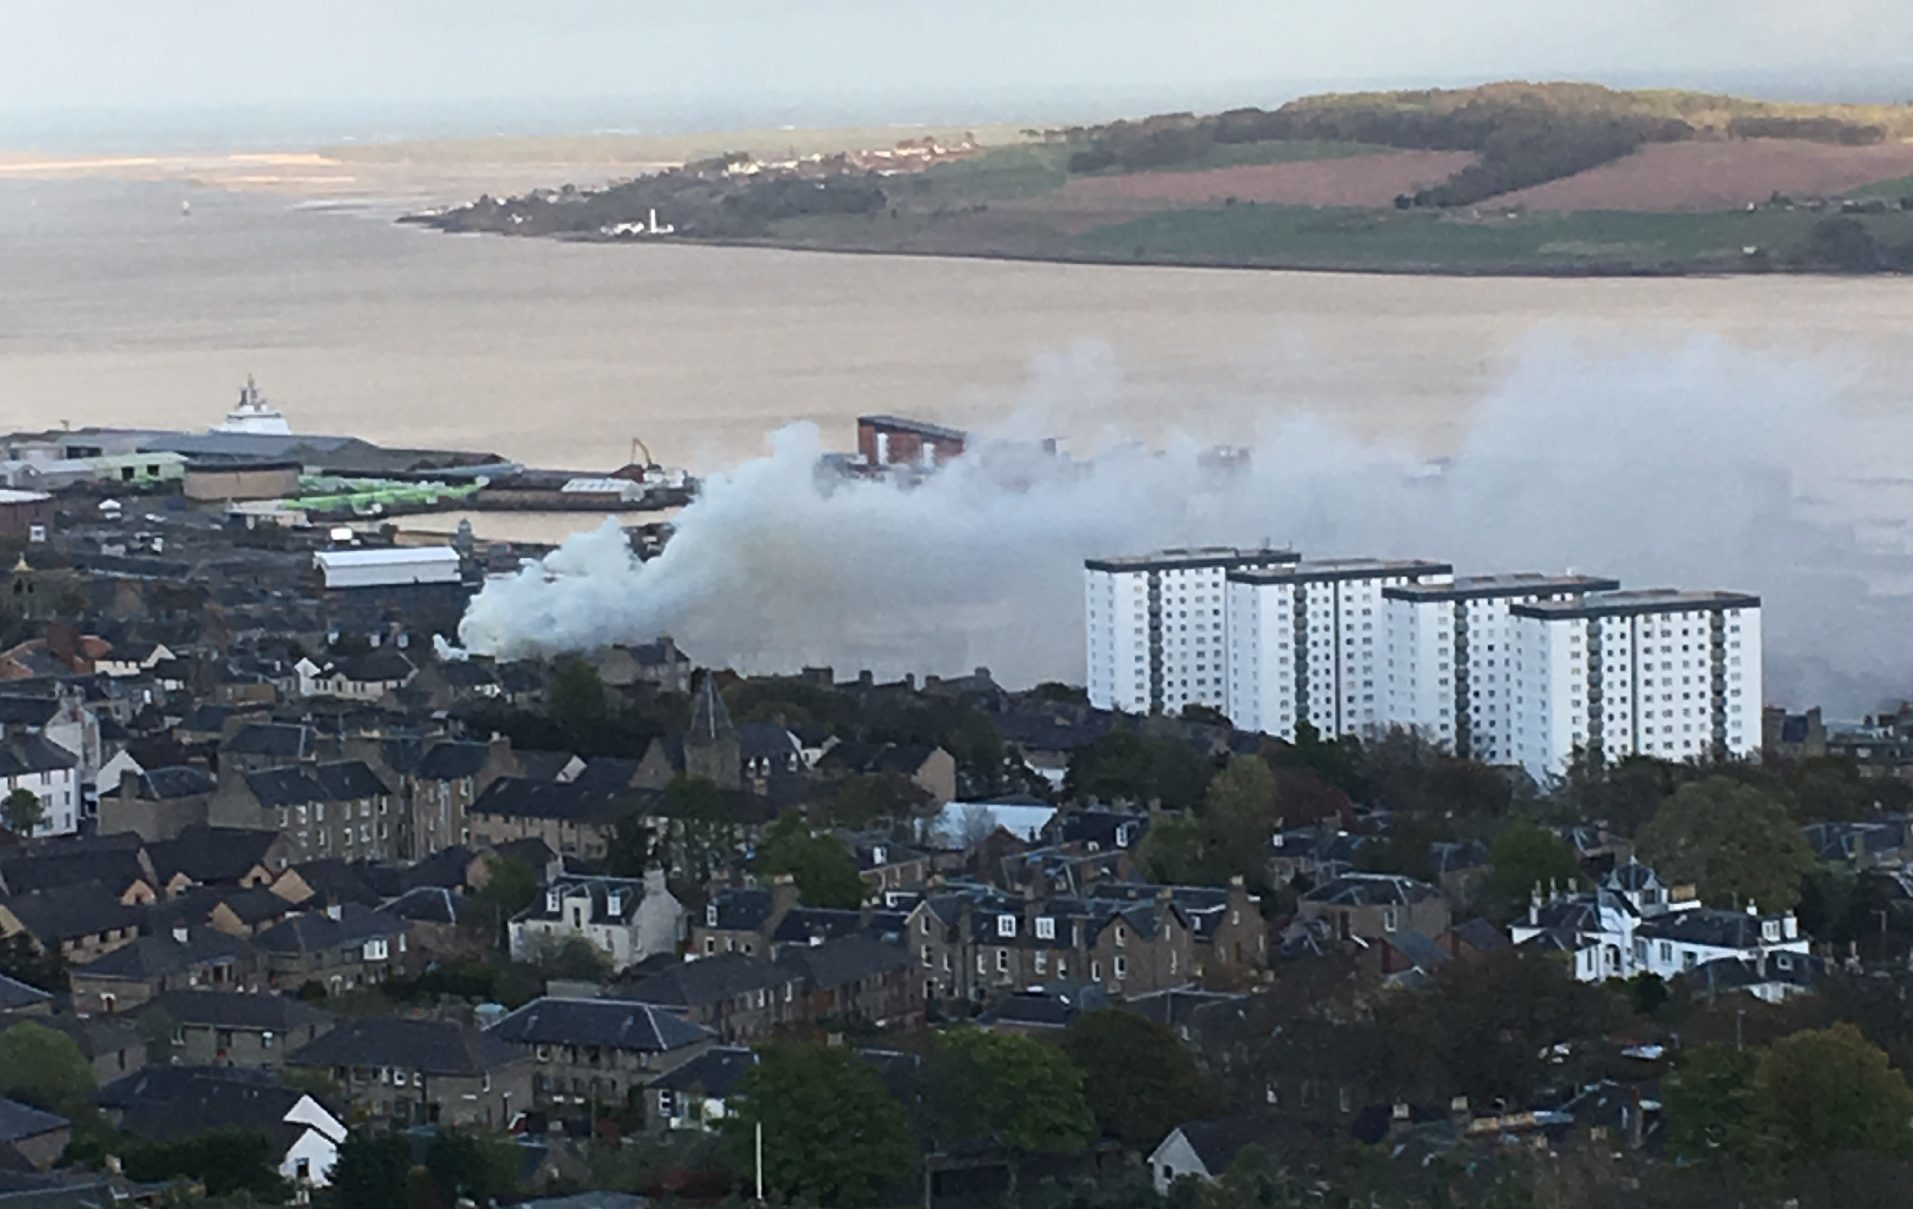 A number of fires have taken place in abandoned buildings in the last week, including one at Forebank House on Tuesday